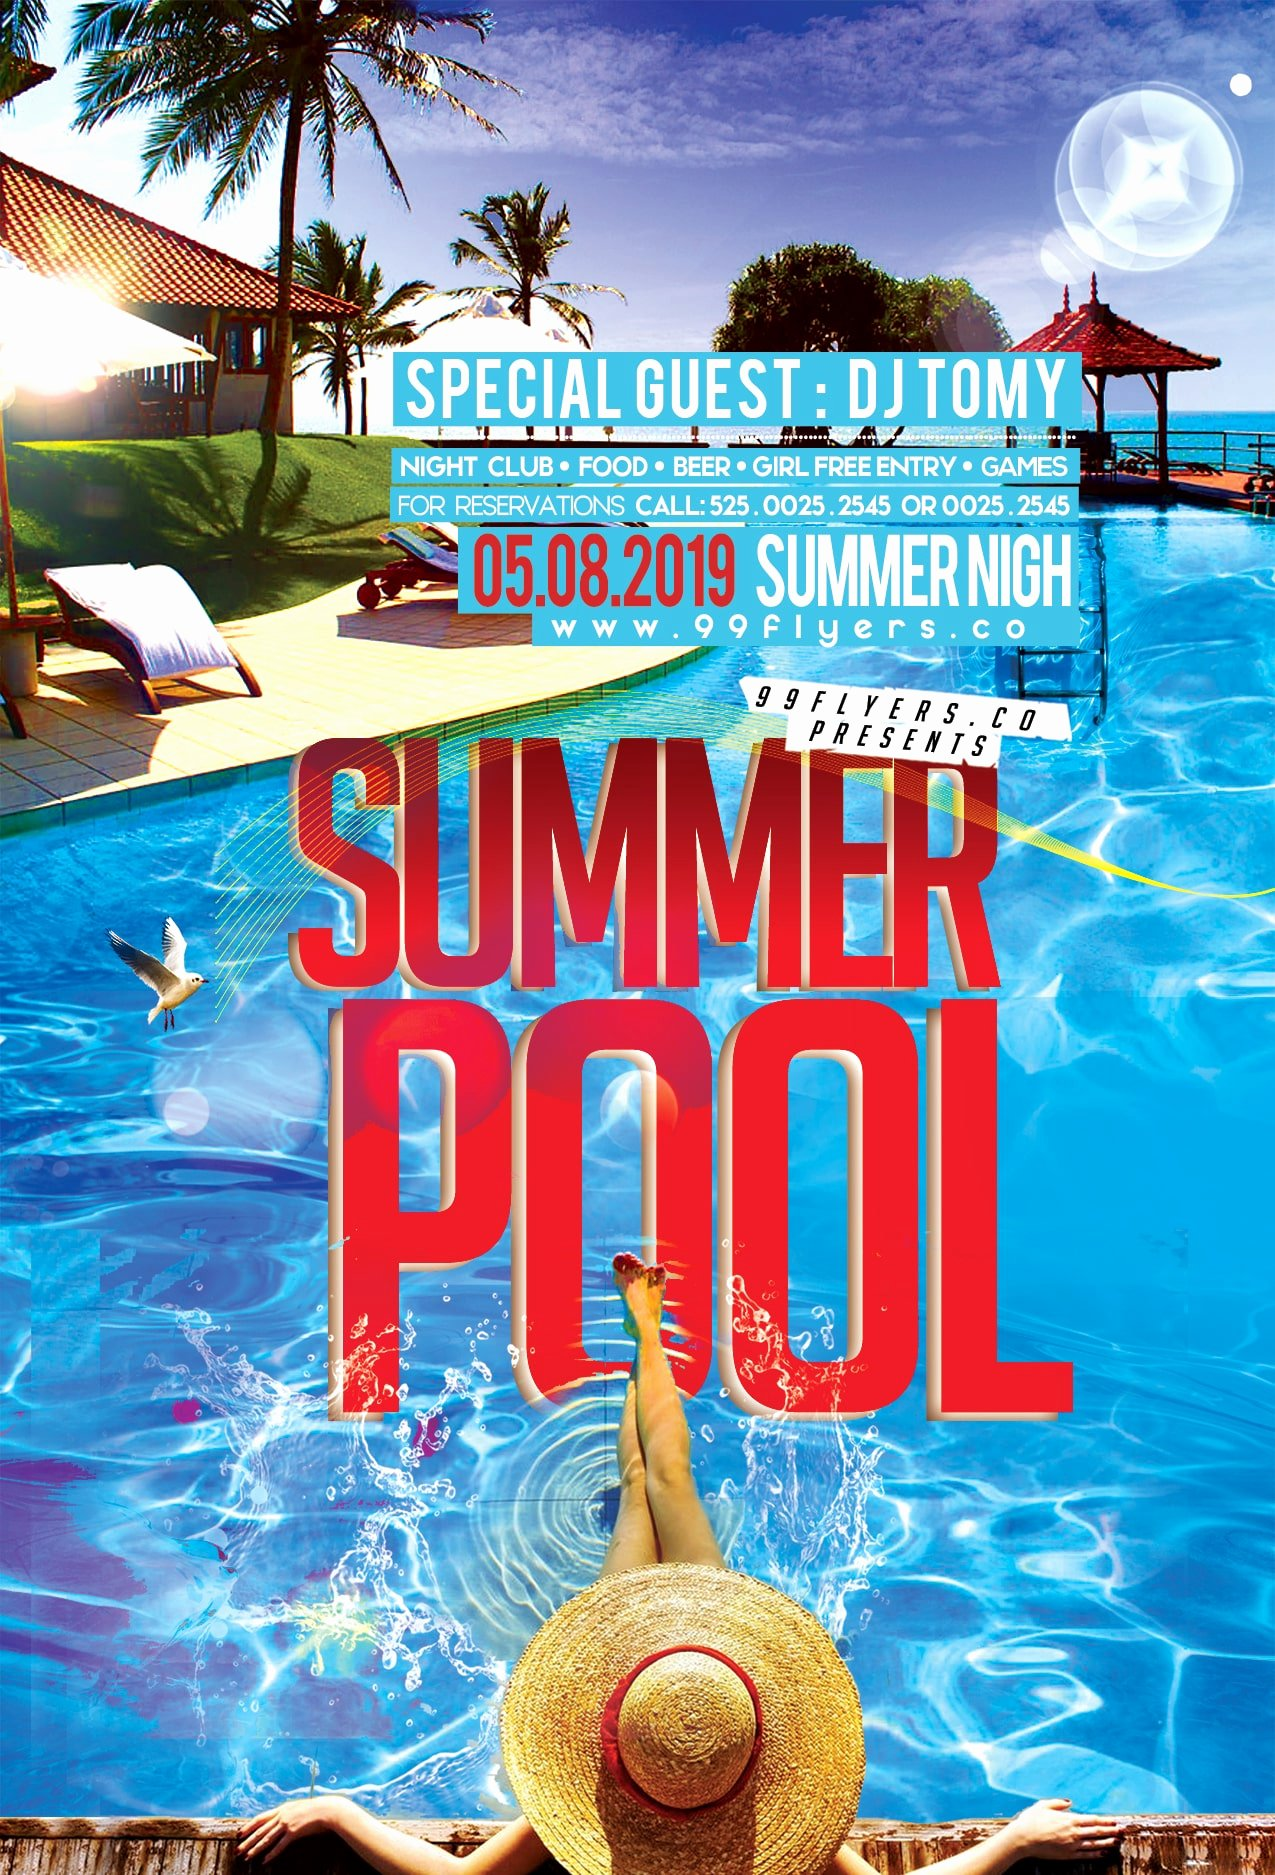 Pool Party Flyers Templates New Summer Pool Party Free Psd Flyer Template Free Psd Flyer